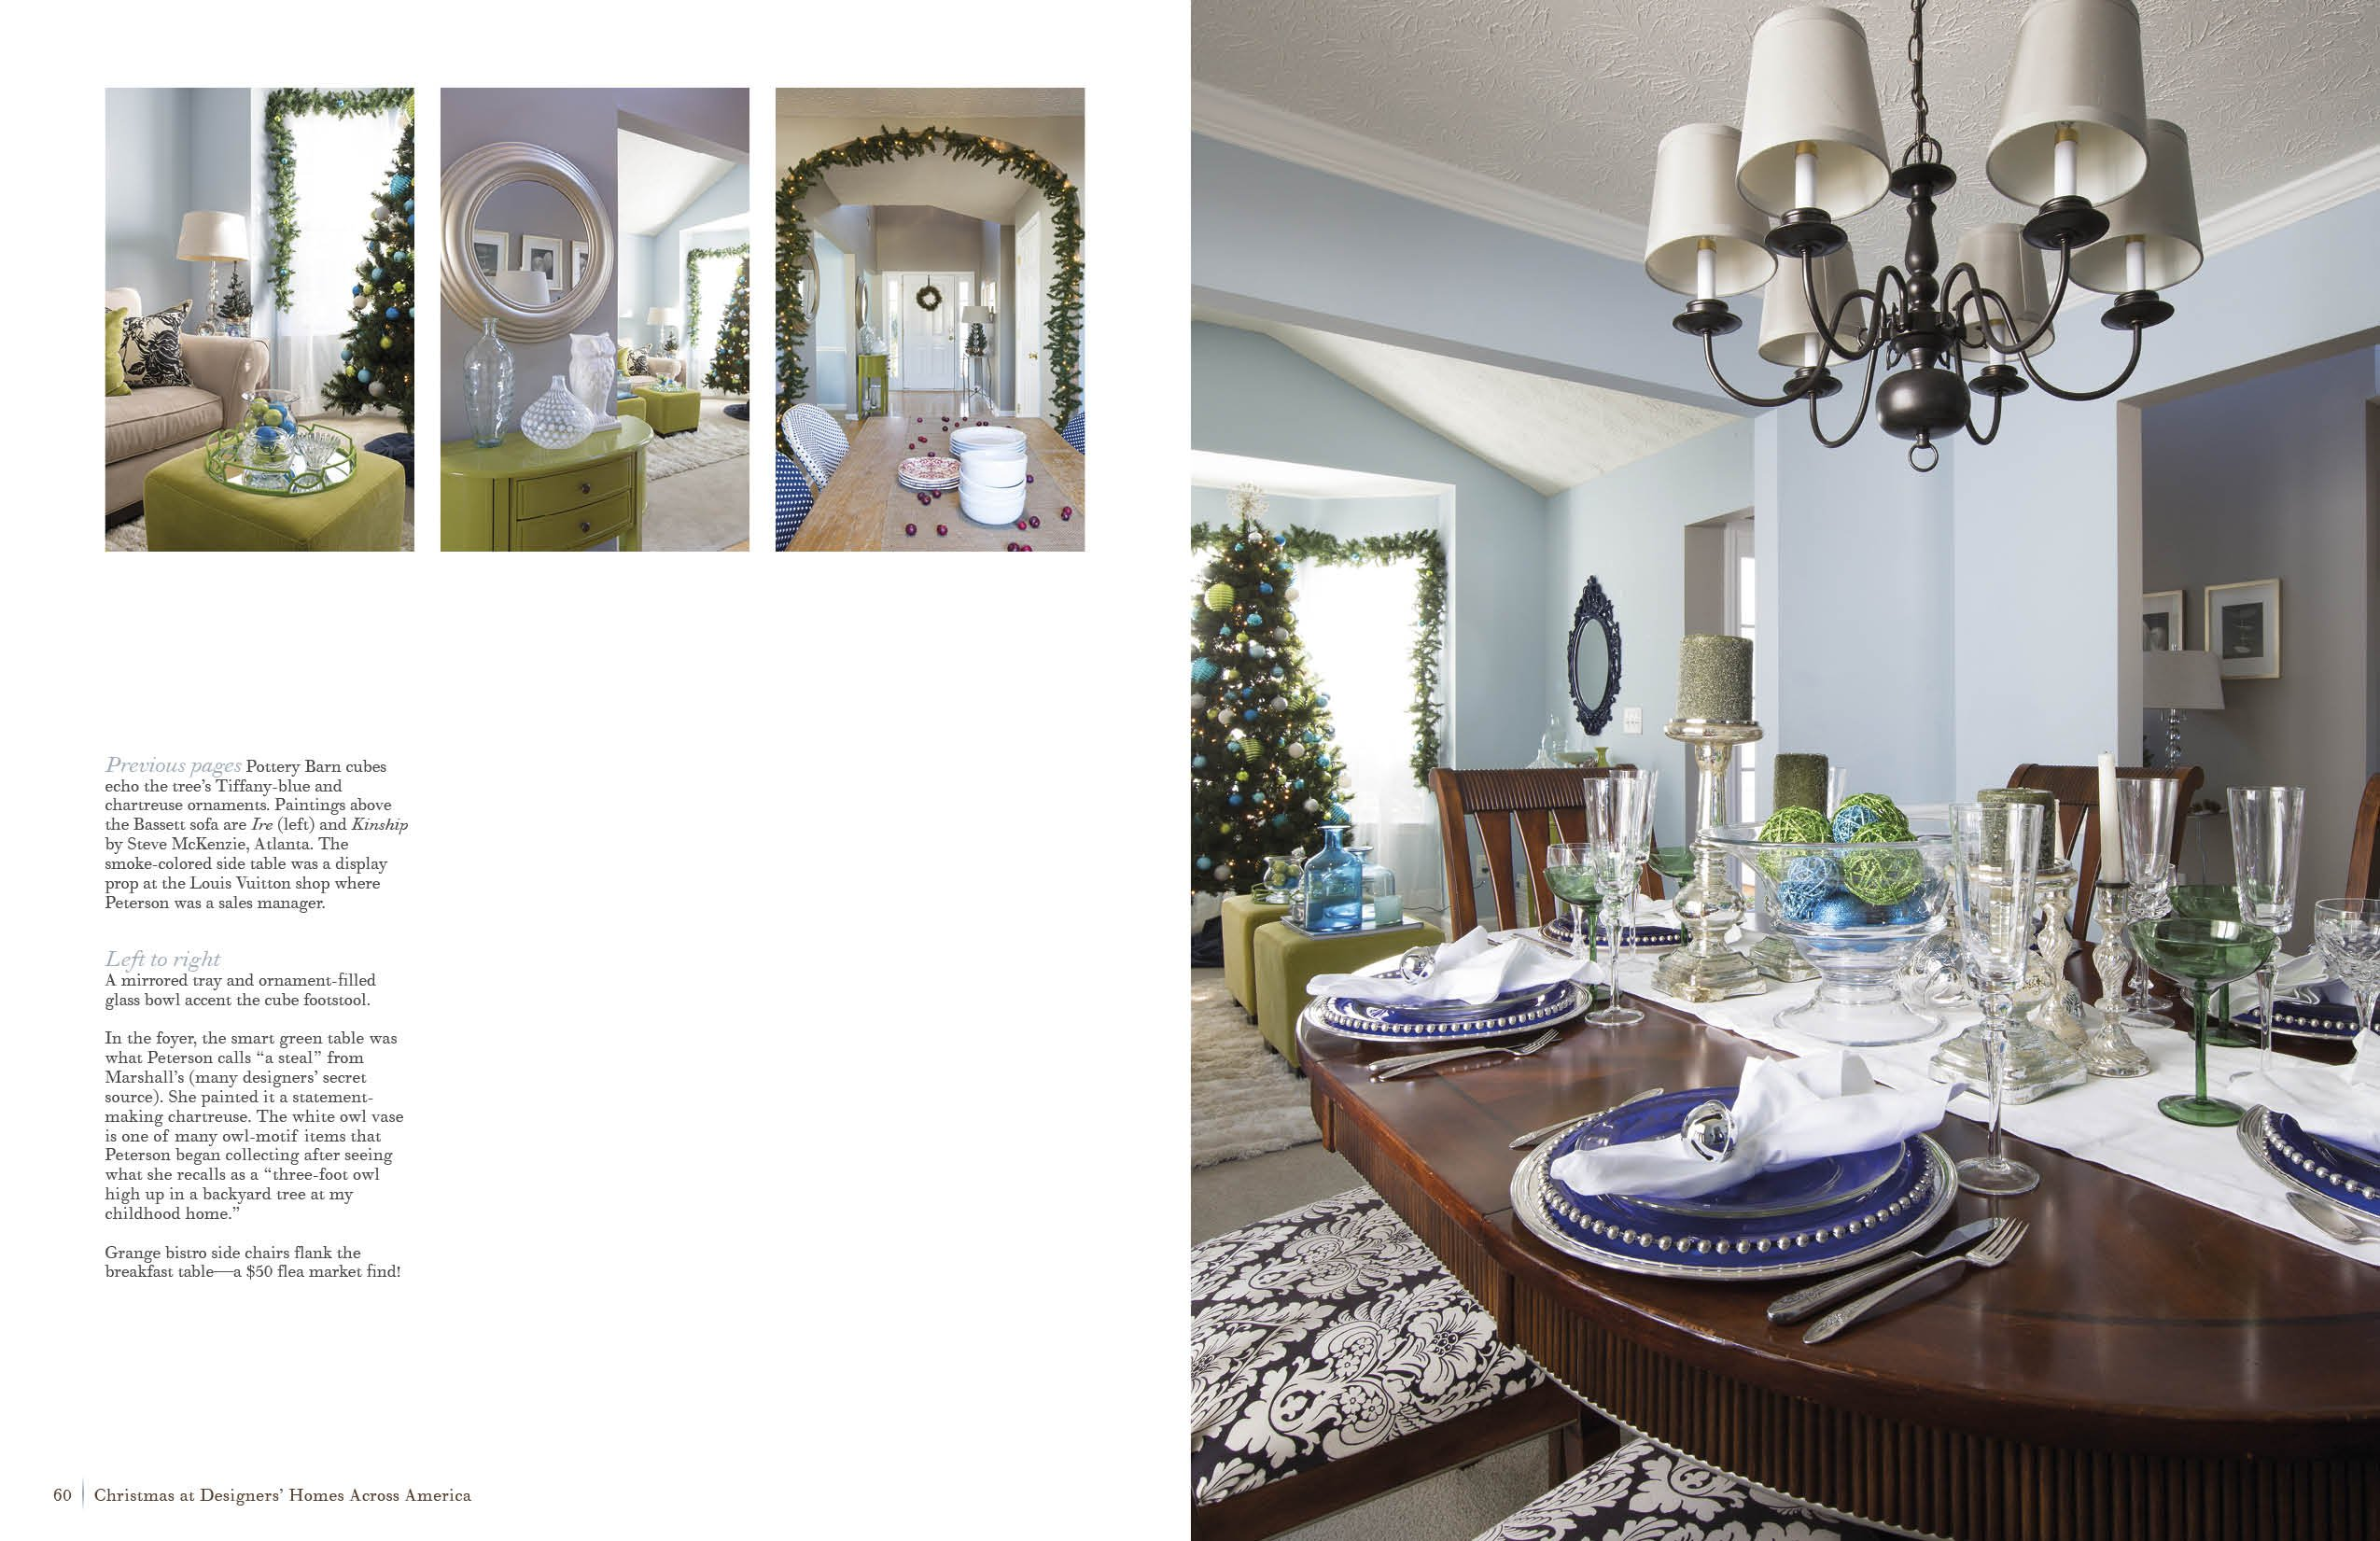 Christmas At Designersu0027 Homes Across America: Katharine McMillan, Patricia  McMillan: 9780764351631: Amazon.com: Books